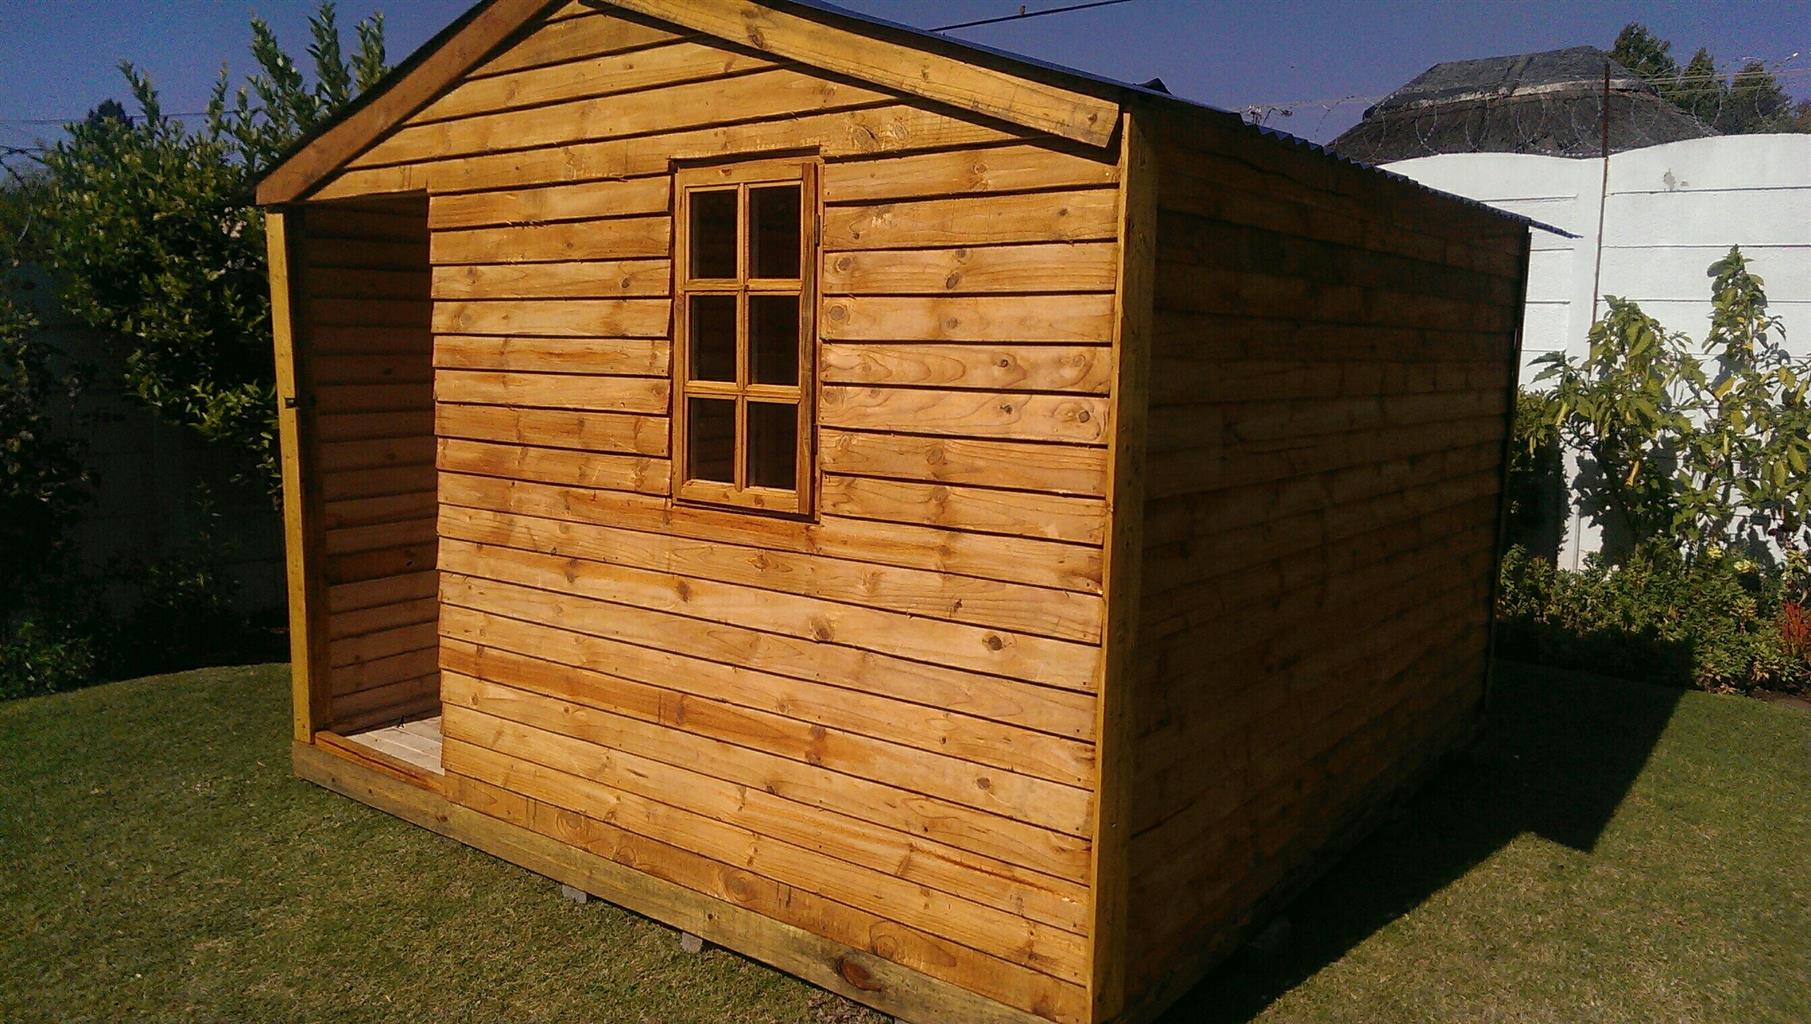 Home Storage wendy Houses & Tool Sheds